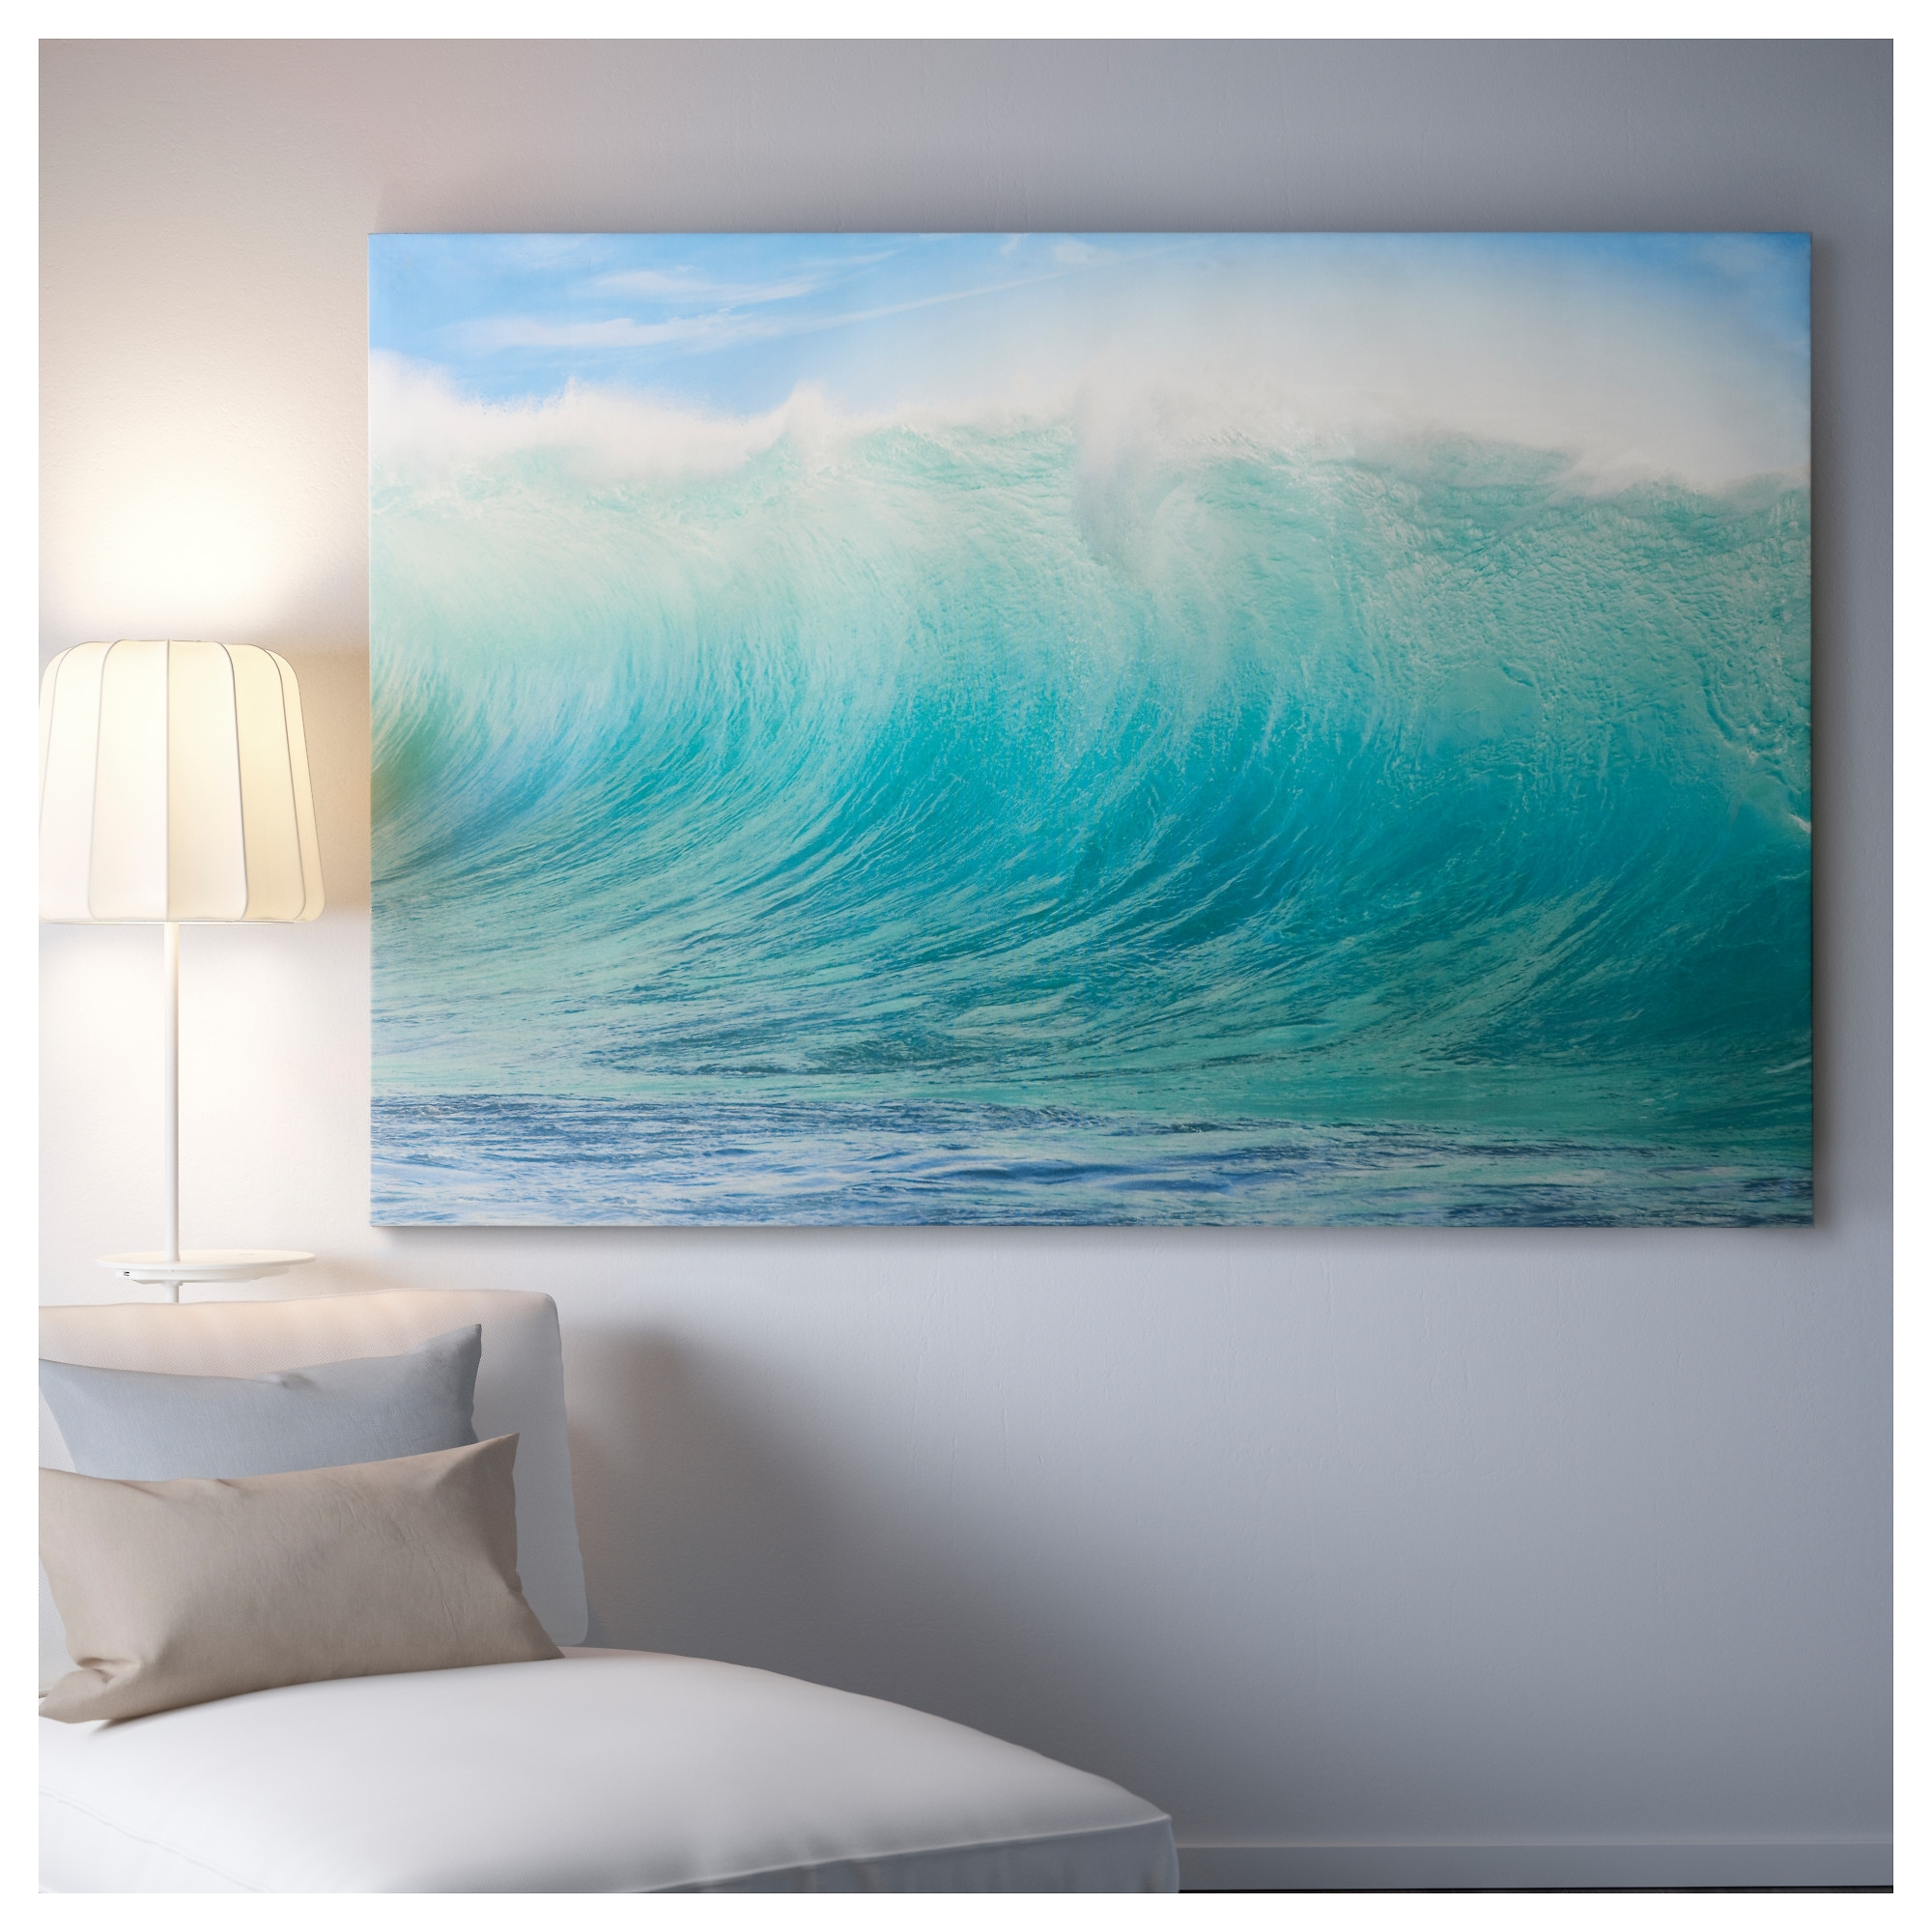 Premiär Picture – Ikea | Kash Crib | Pinterest | Sofa Bed Mattress In Most Recent Hawaii Canvas Wall Art (View 14 of 15)